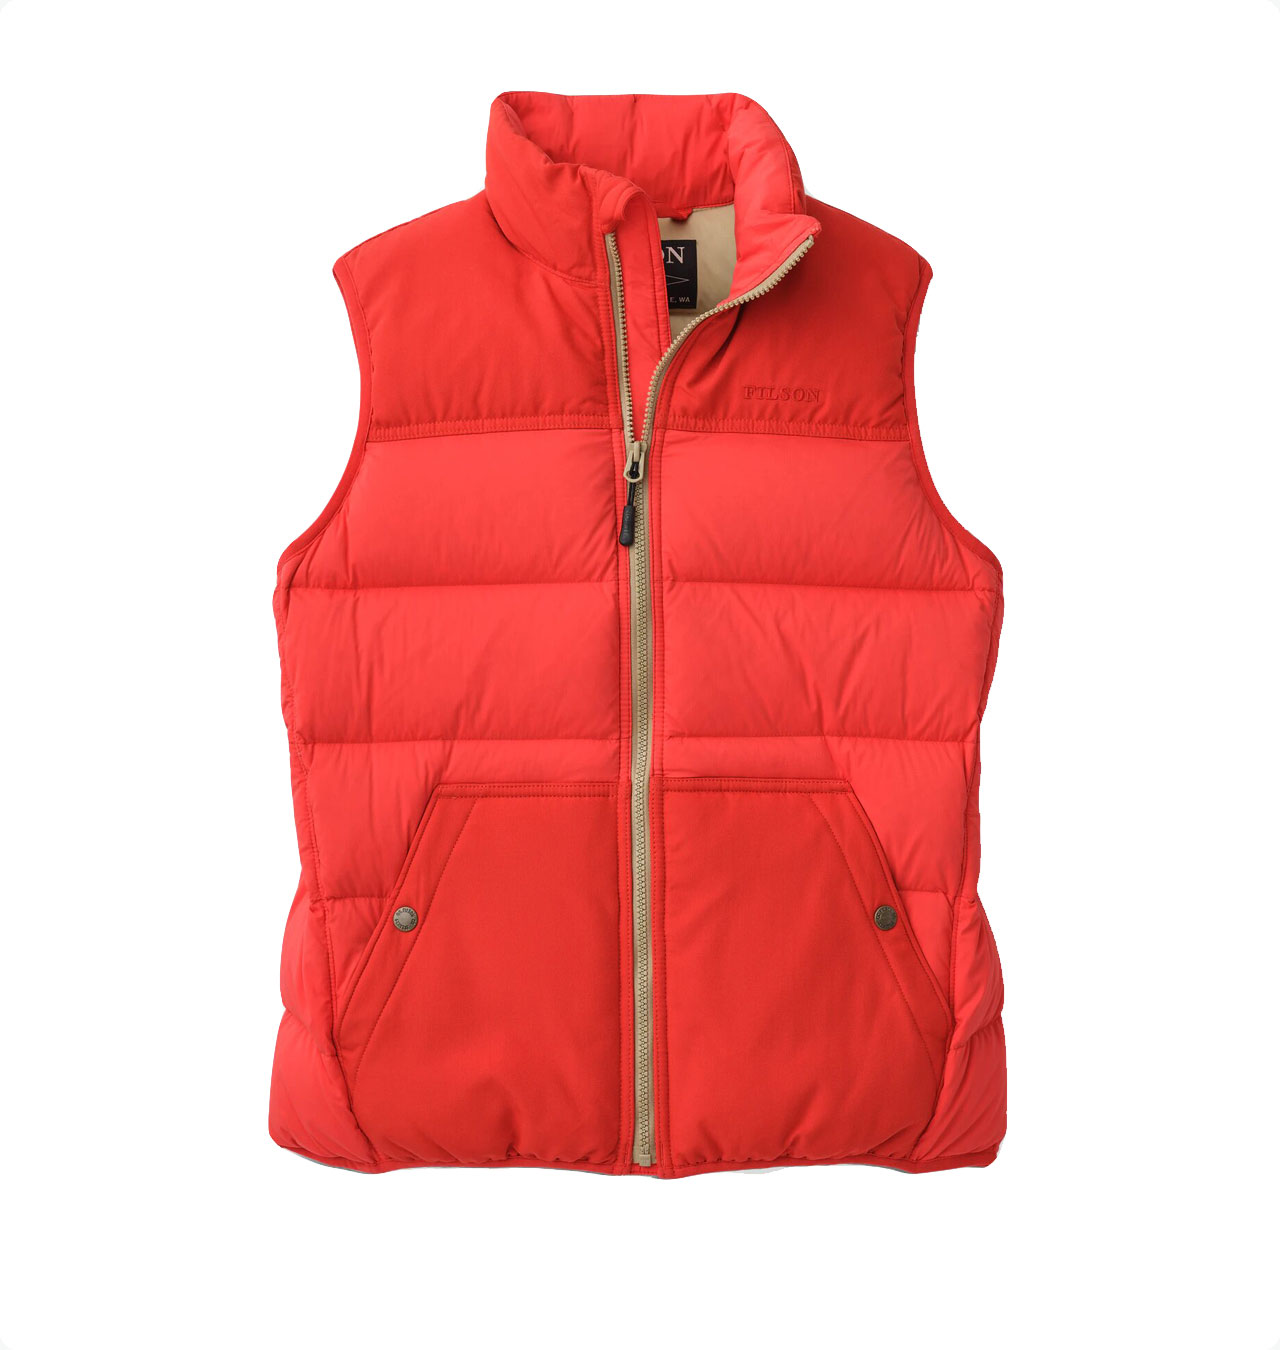 Filson---Womens-Featherweight-Down-Vest---Bright-Red-1